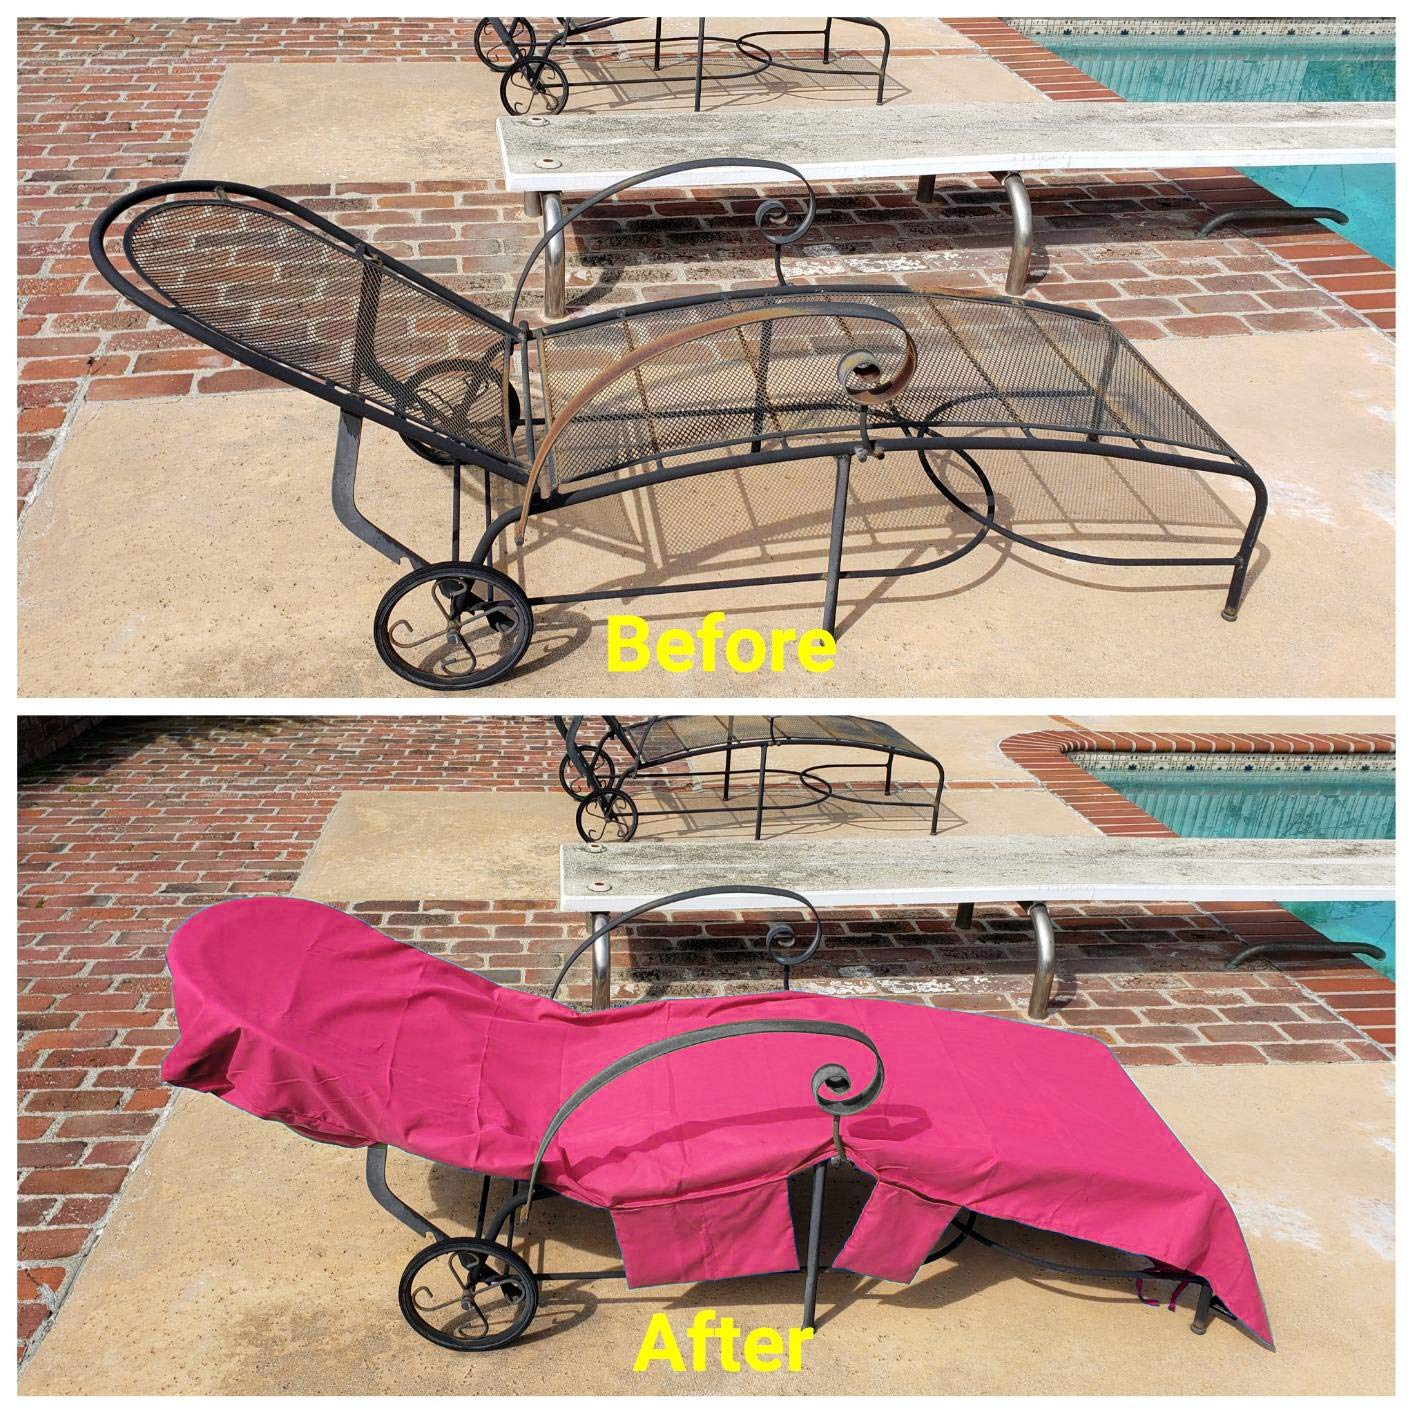 VOCOOL Sun Lounger Mate Beach Towel Carry Pockets Bags Holiday Garden Thicker Lounge Pink